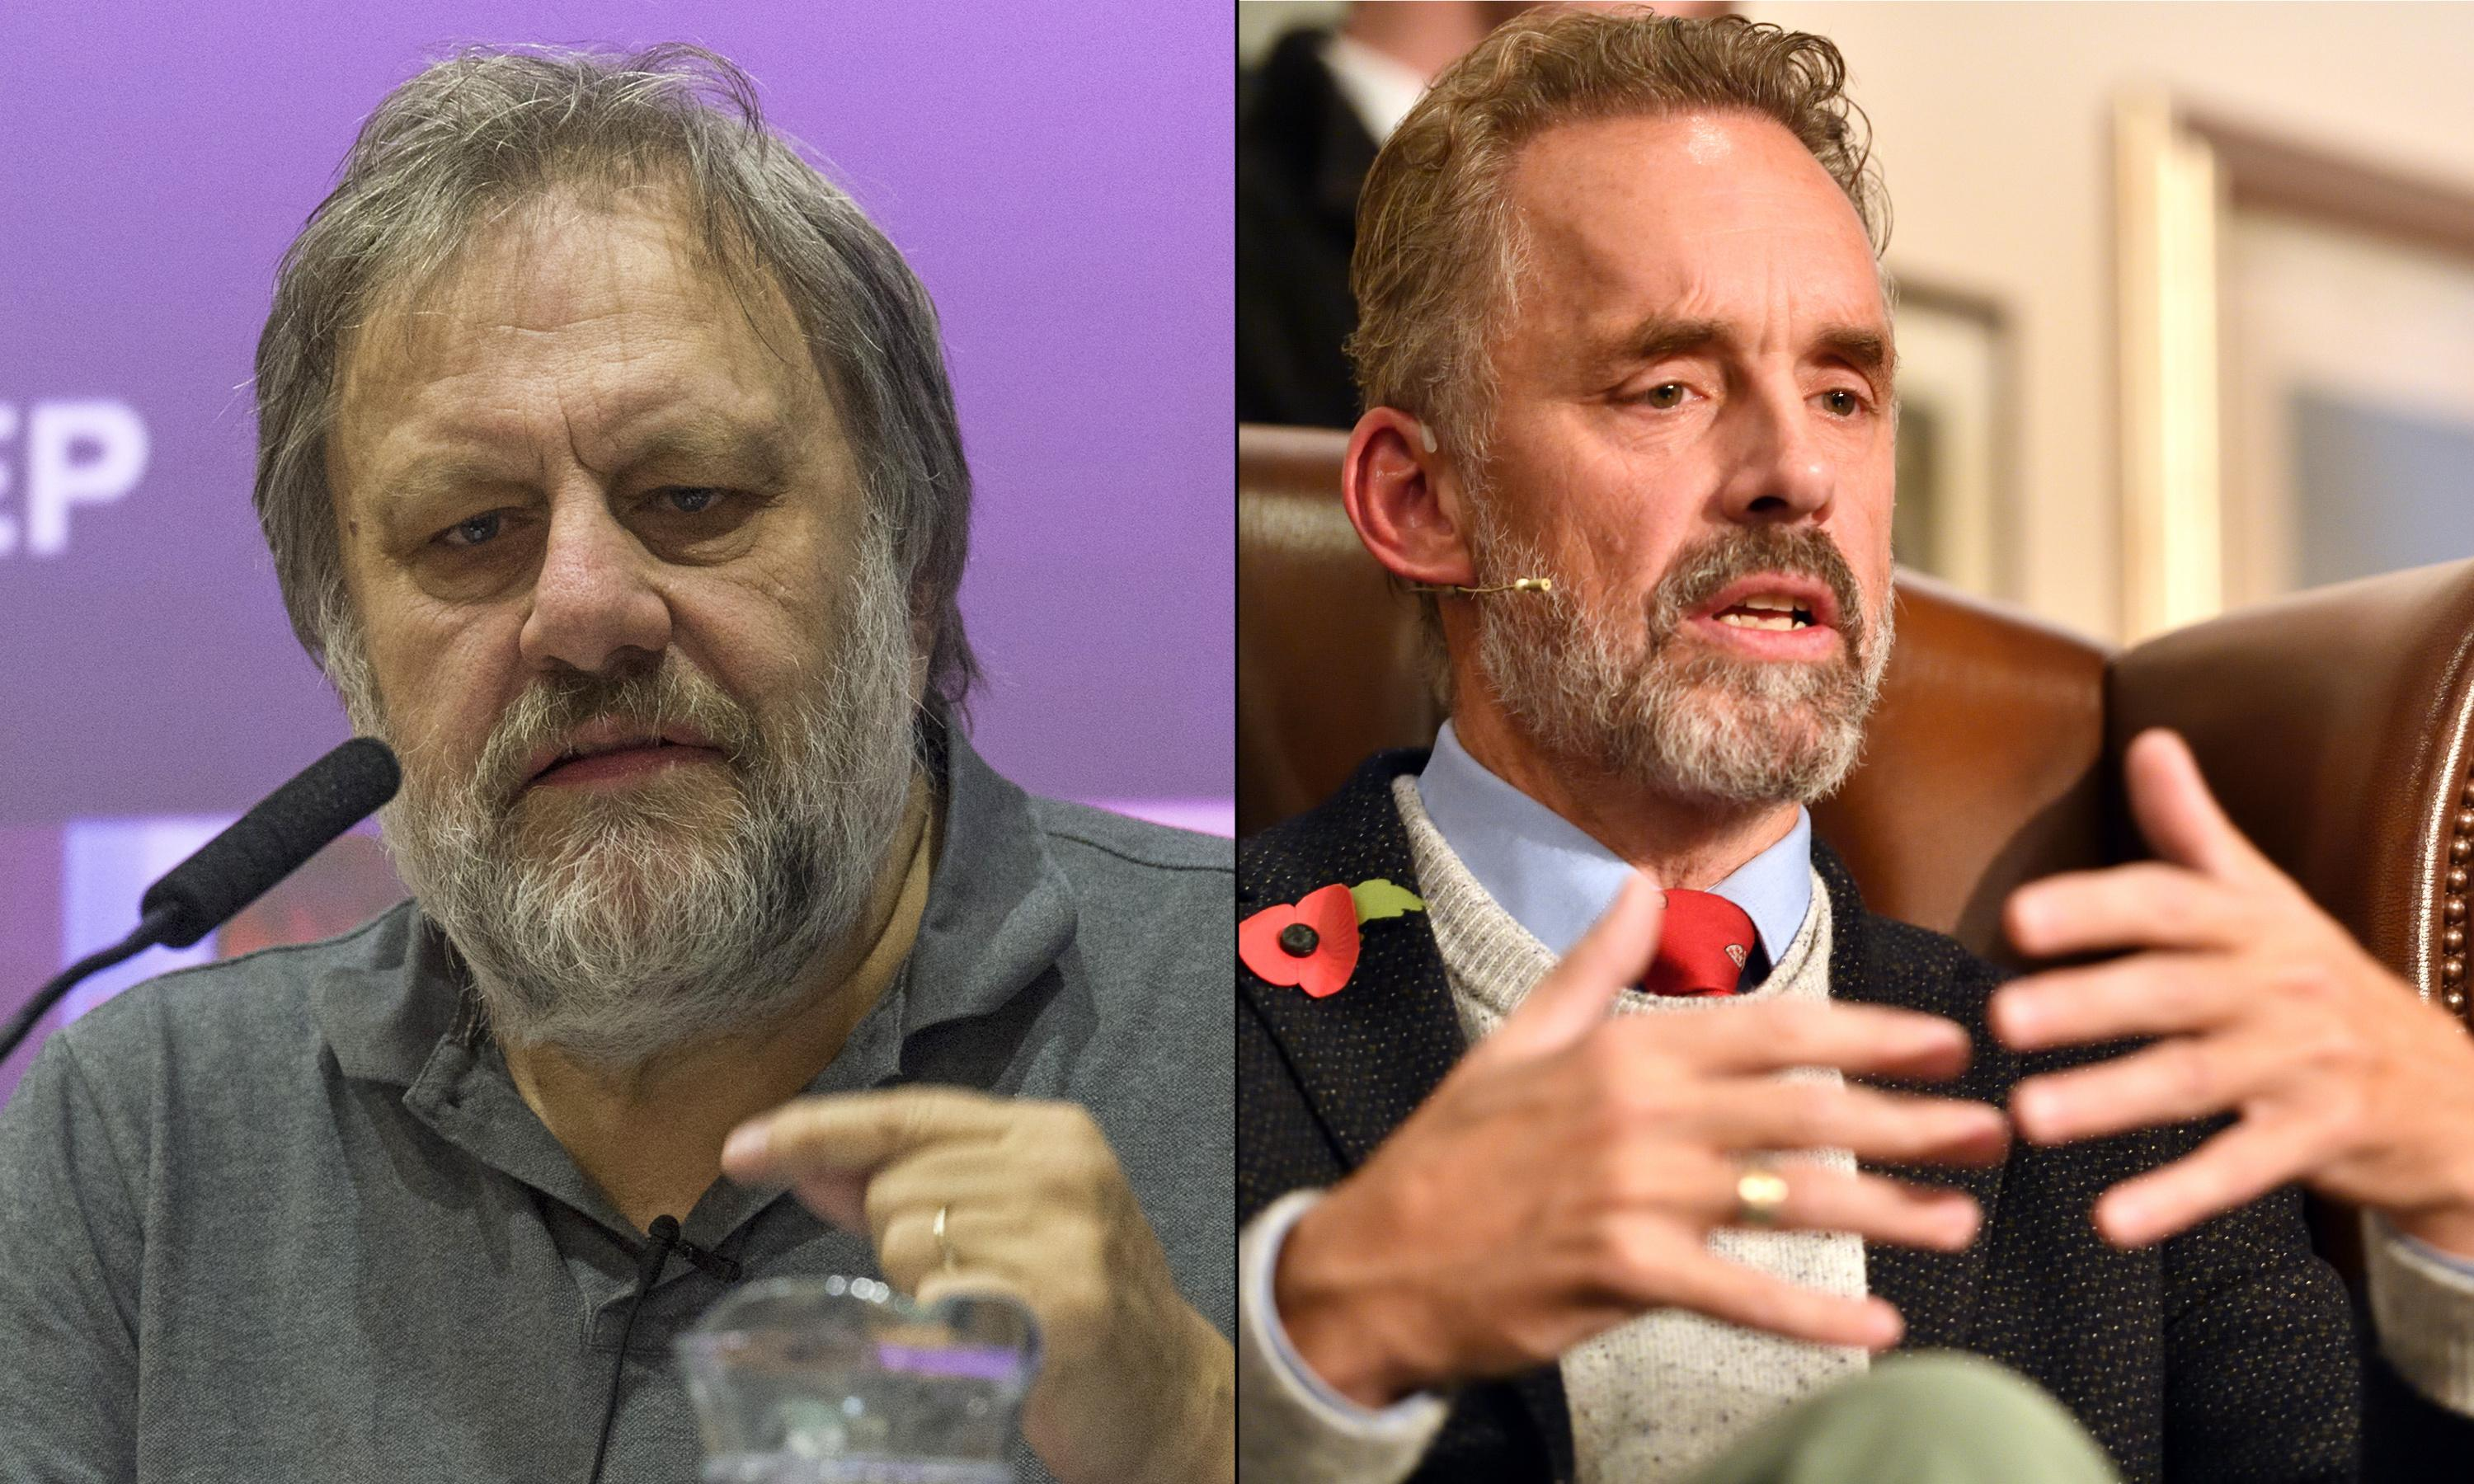 The 'debate of the century': what happened when Jordan Peterson debated Slavoj Žižek